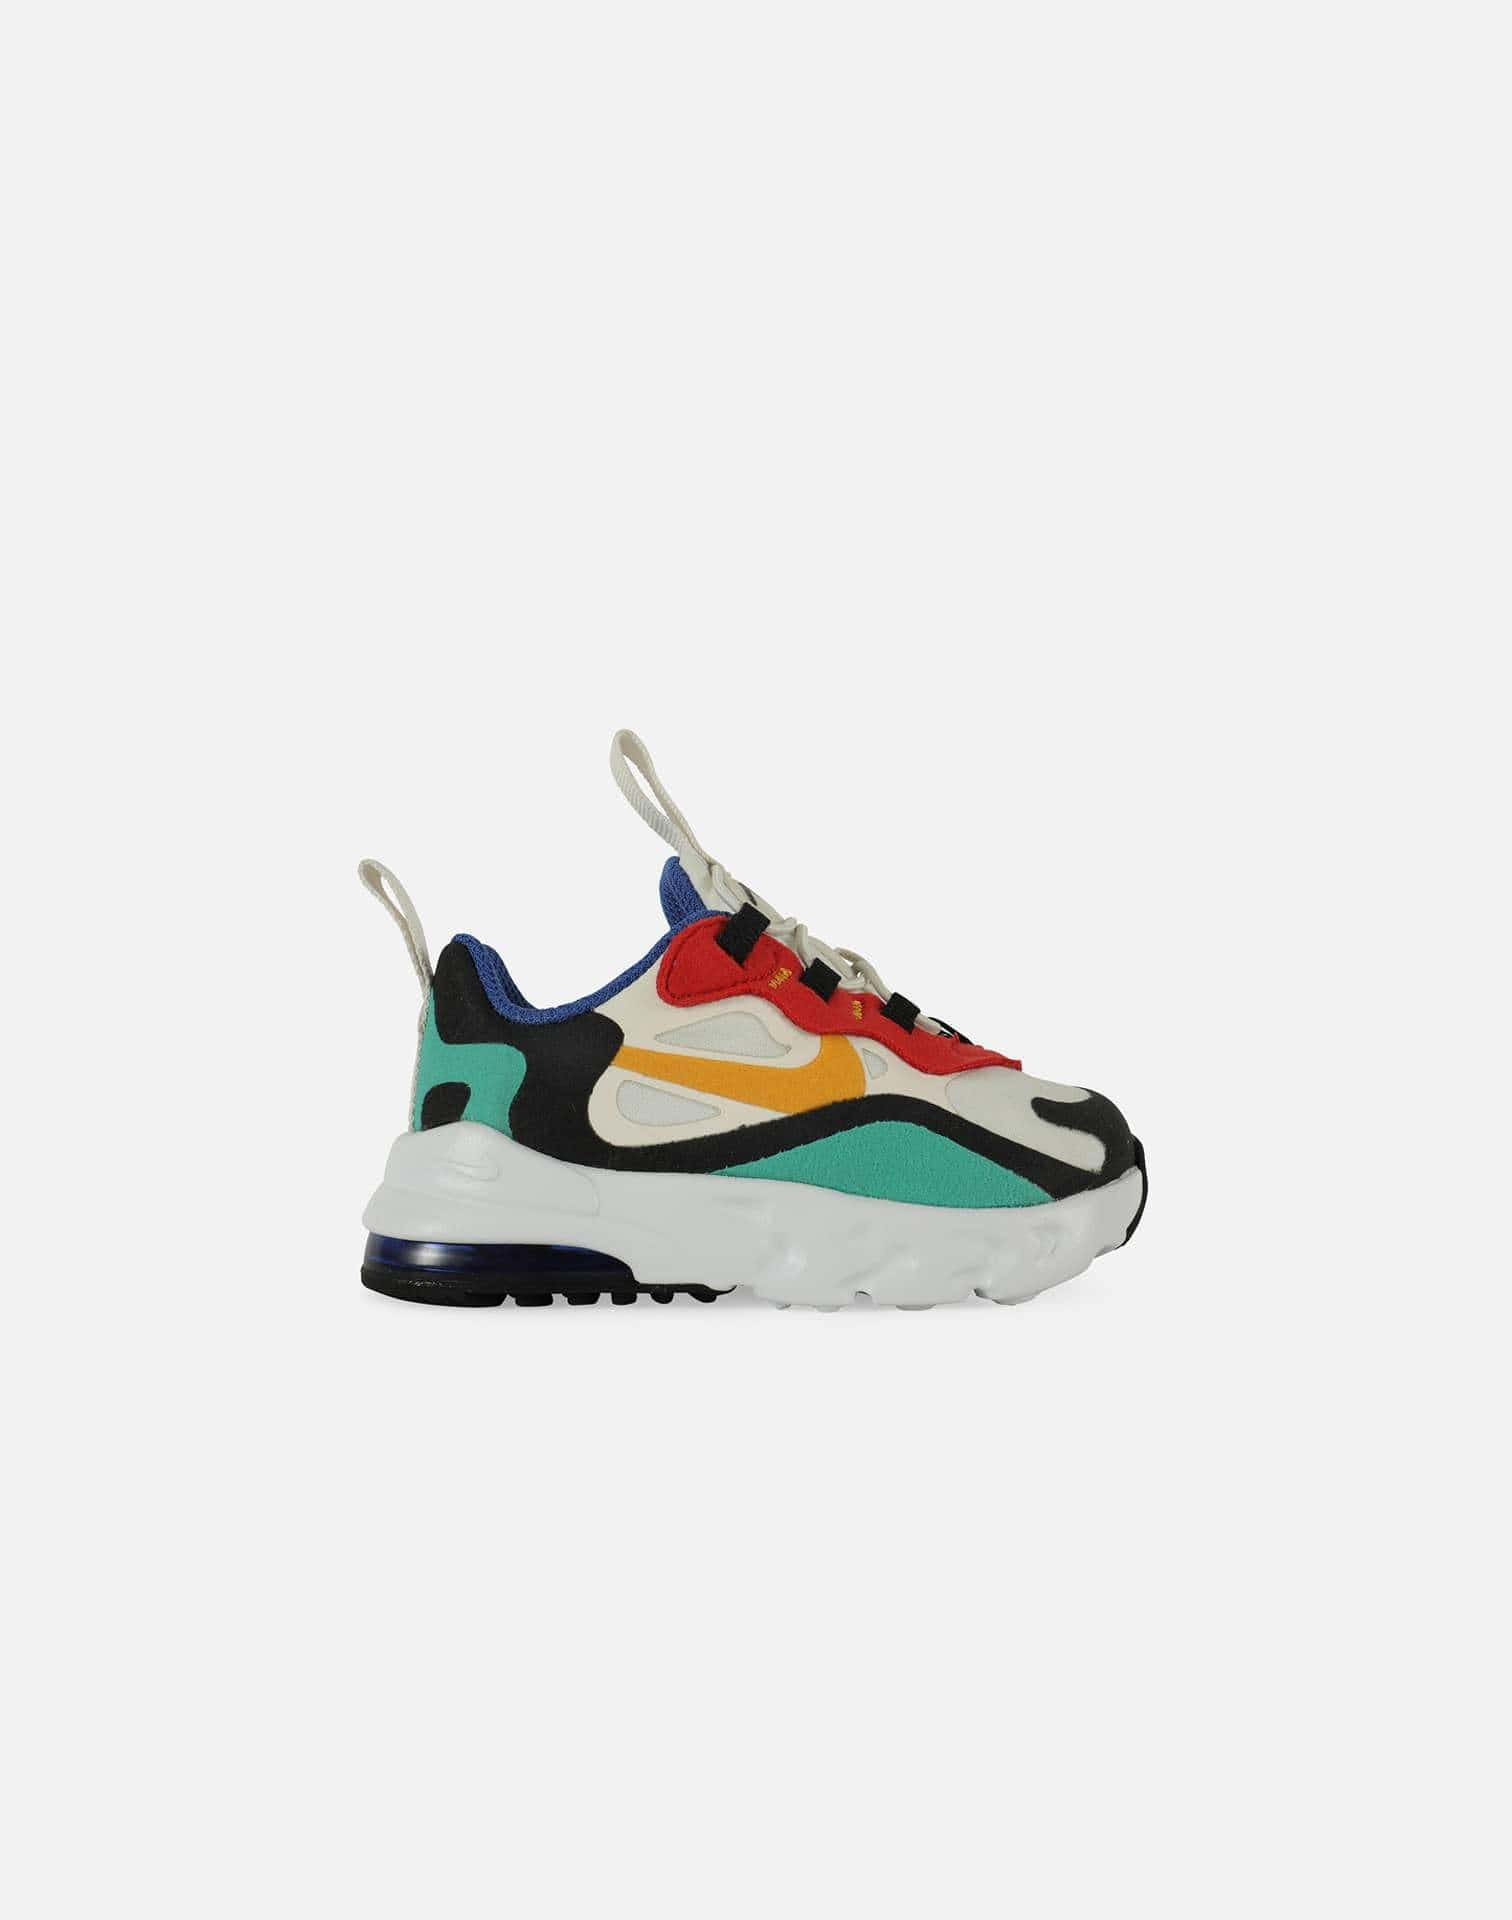 AIR MAX 270 REACT INFANT – DTLR